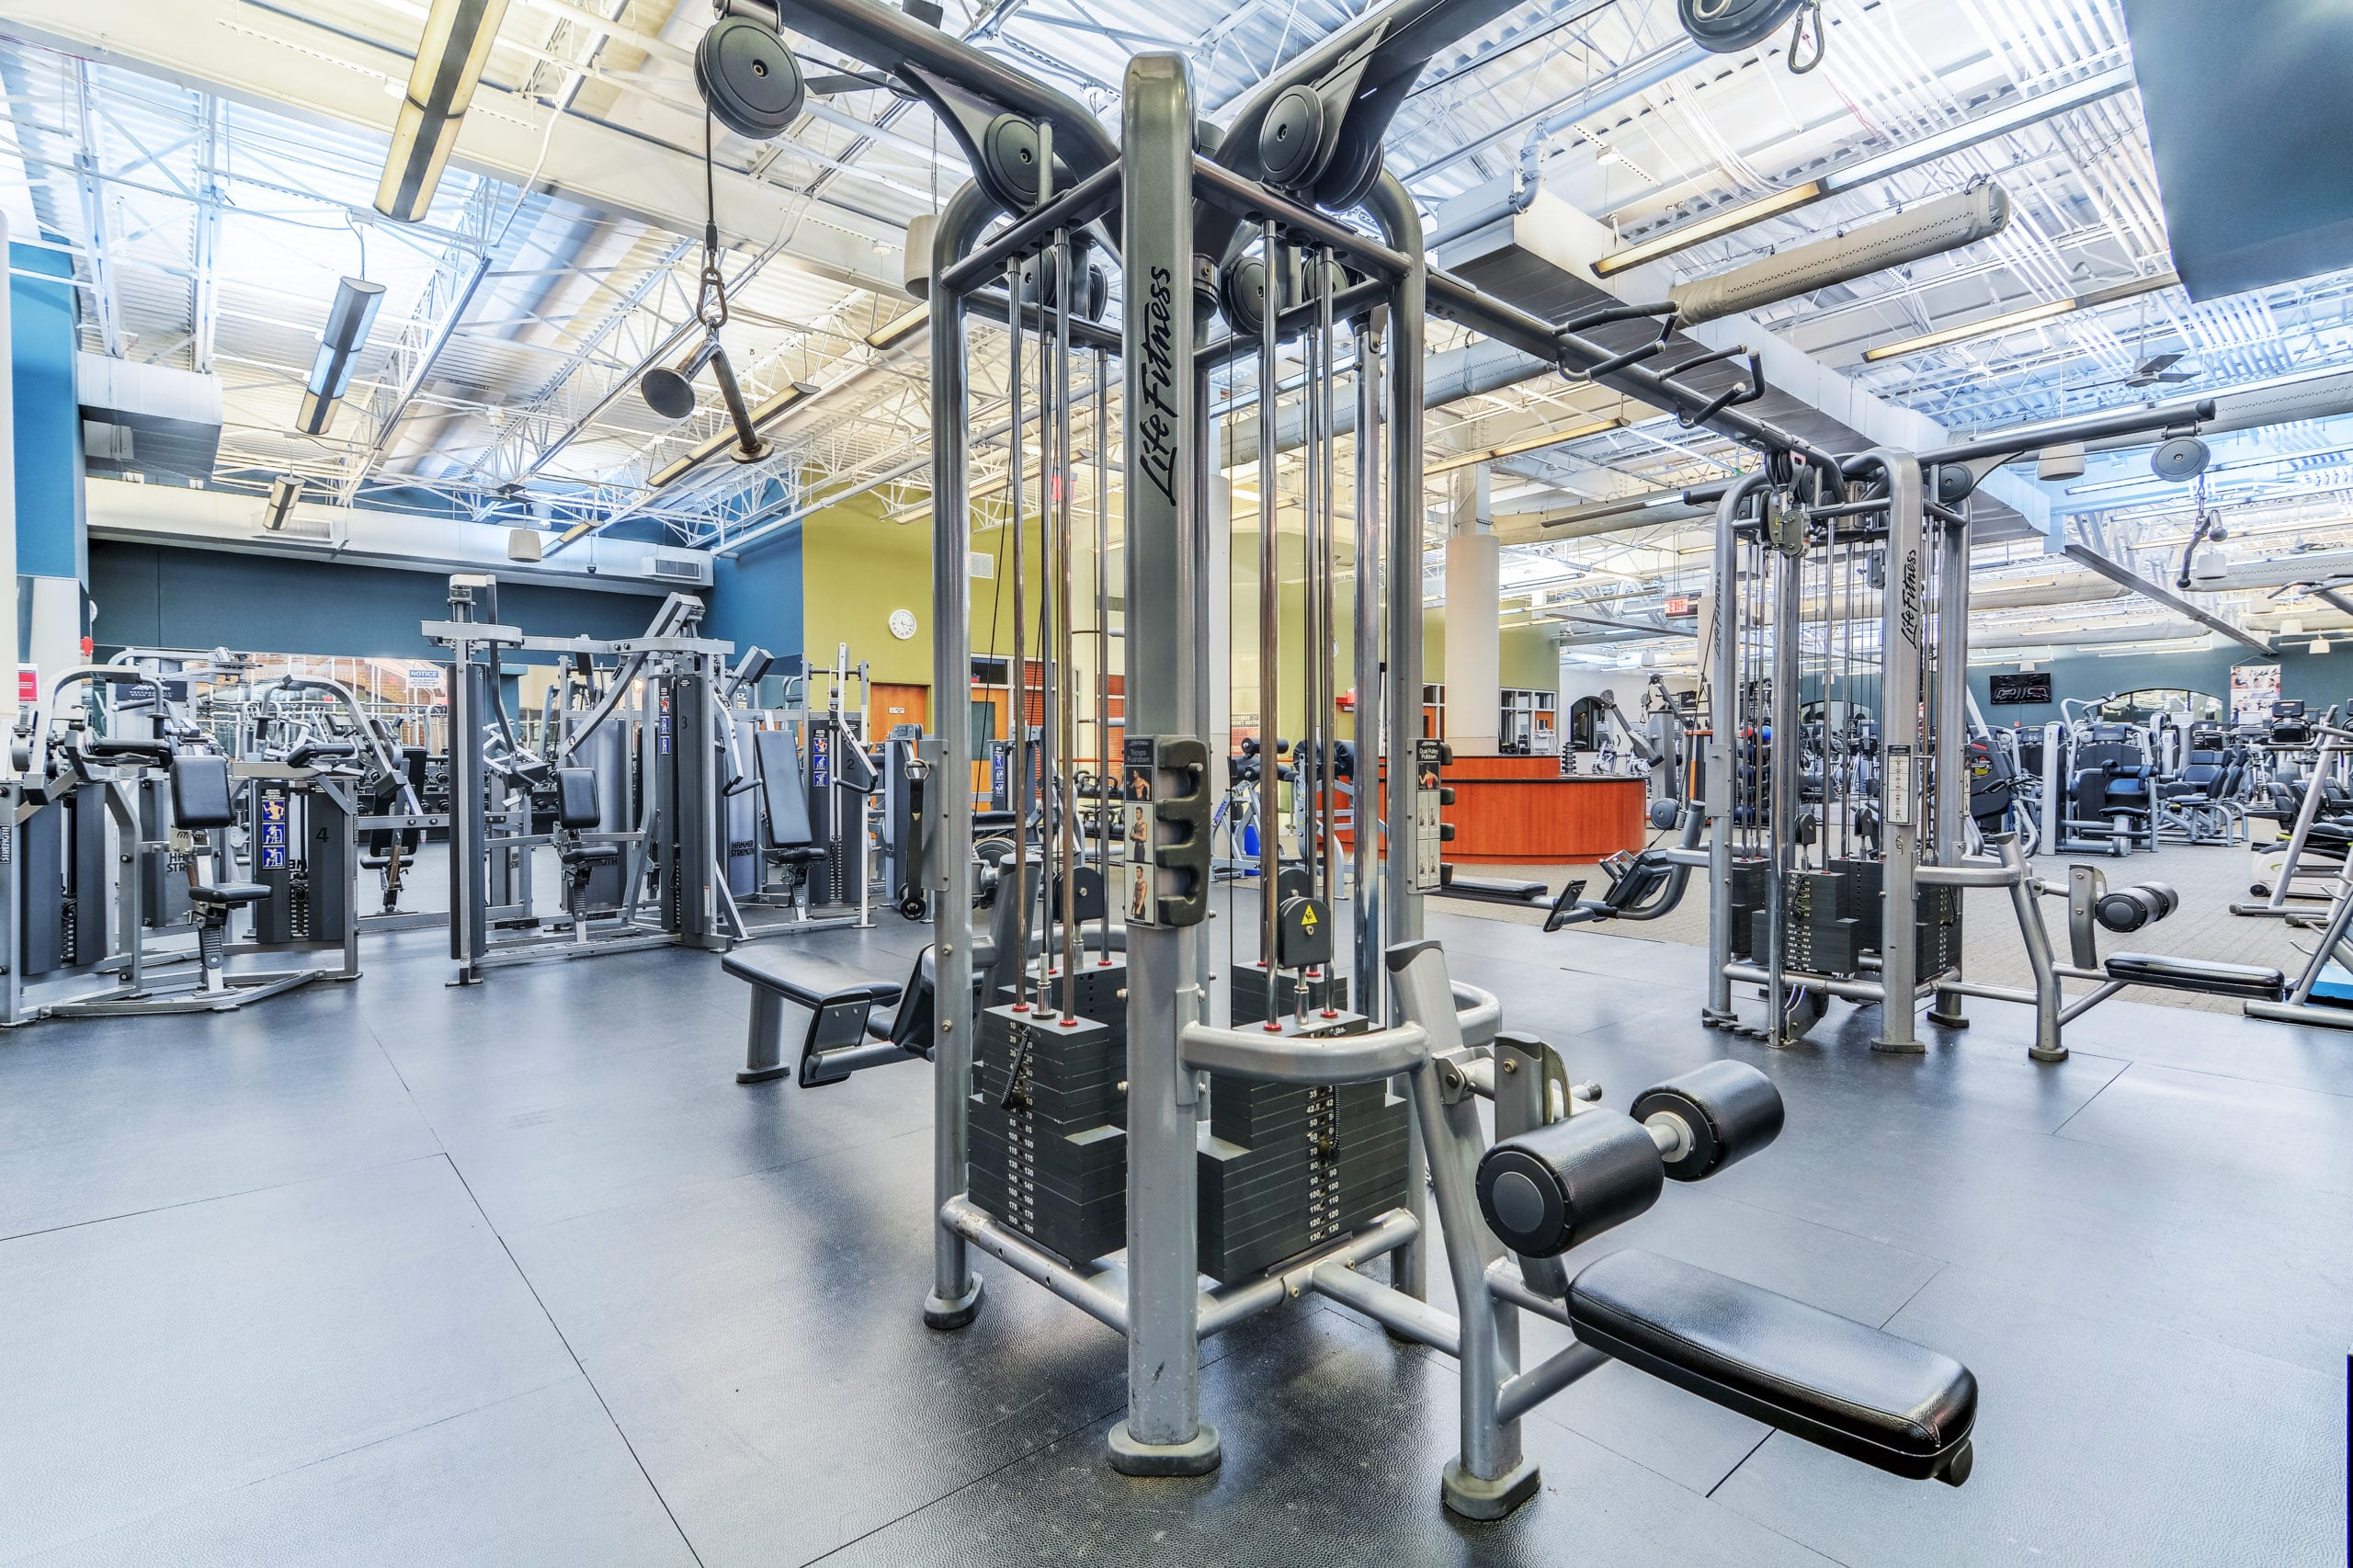 Fitness Floor- RWJ RAHWAY FITNESS & WELLNESS AT CARTERET